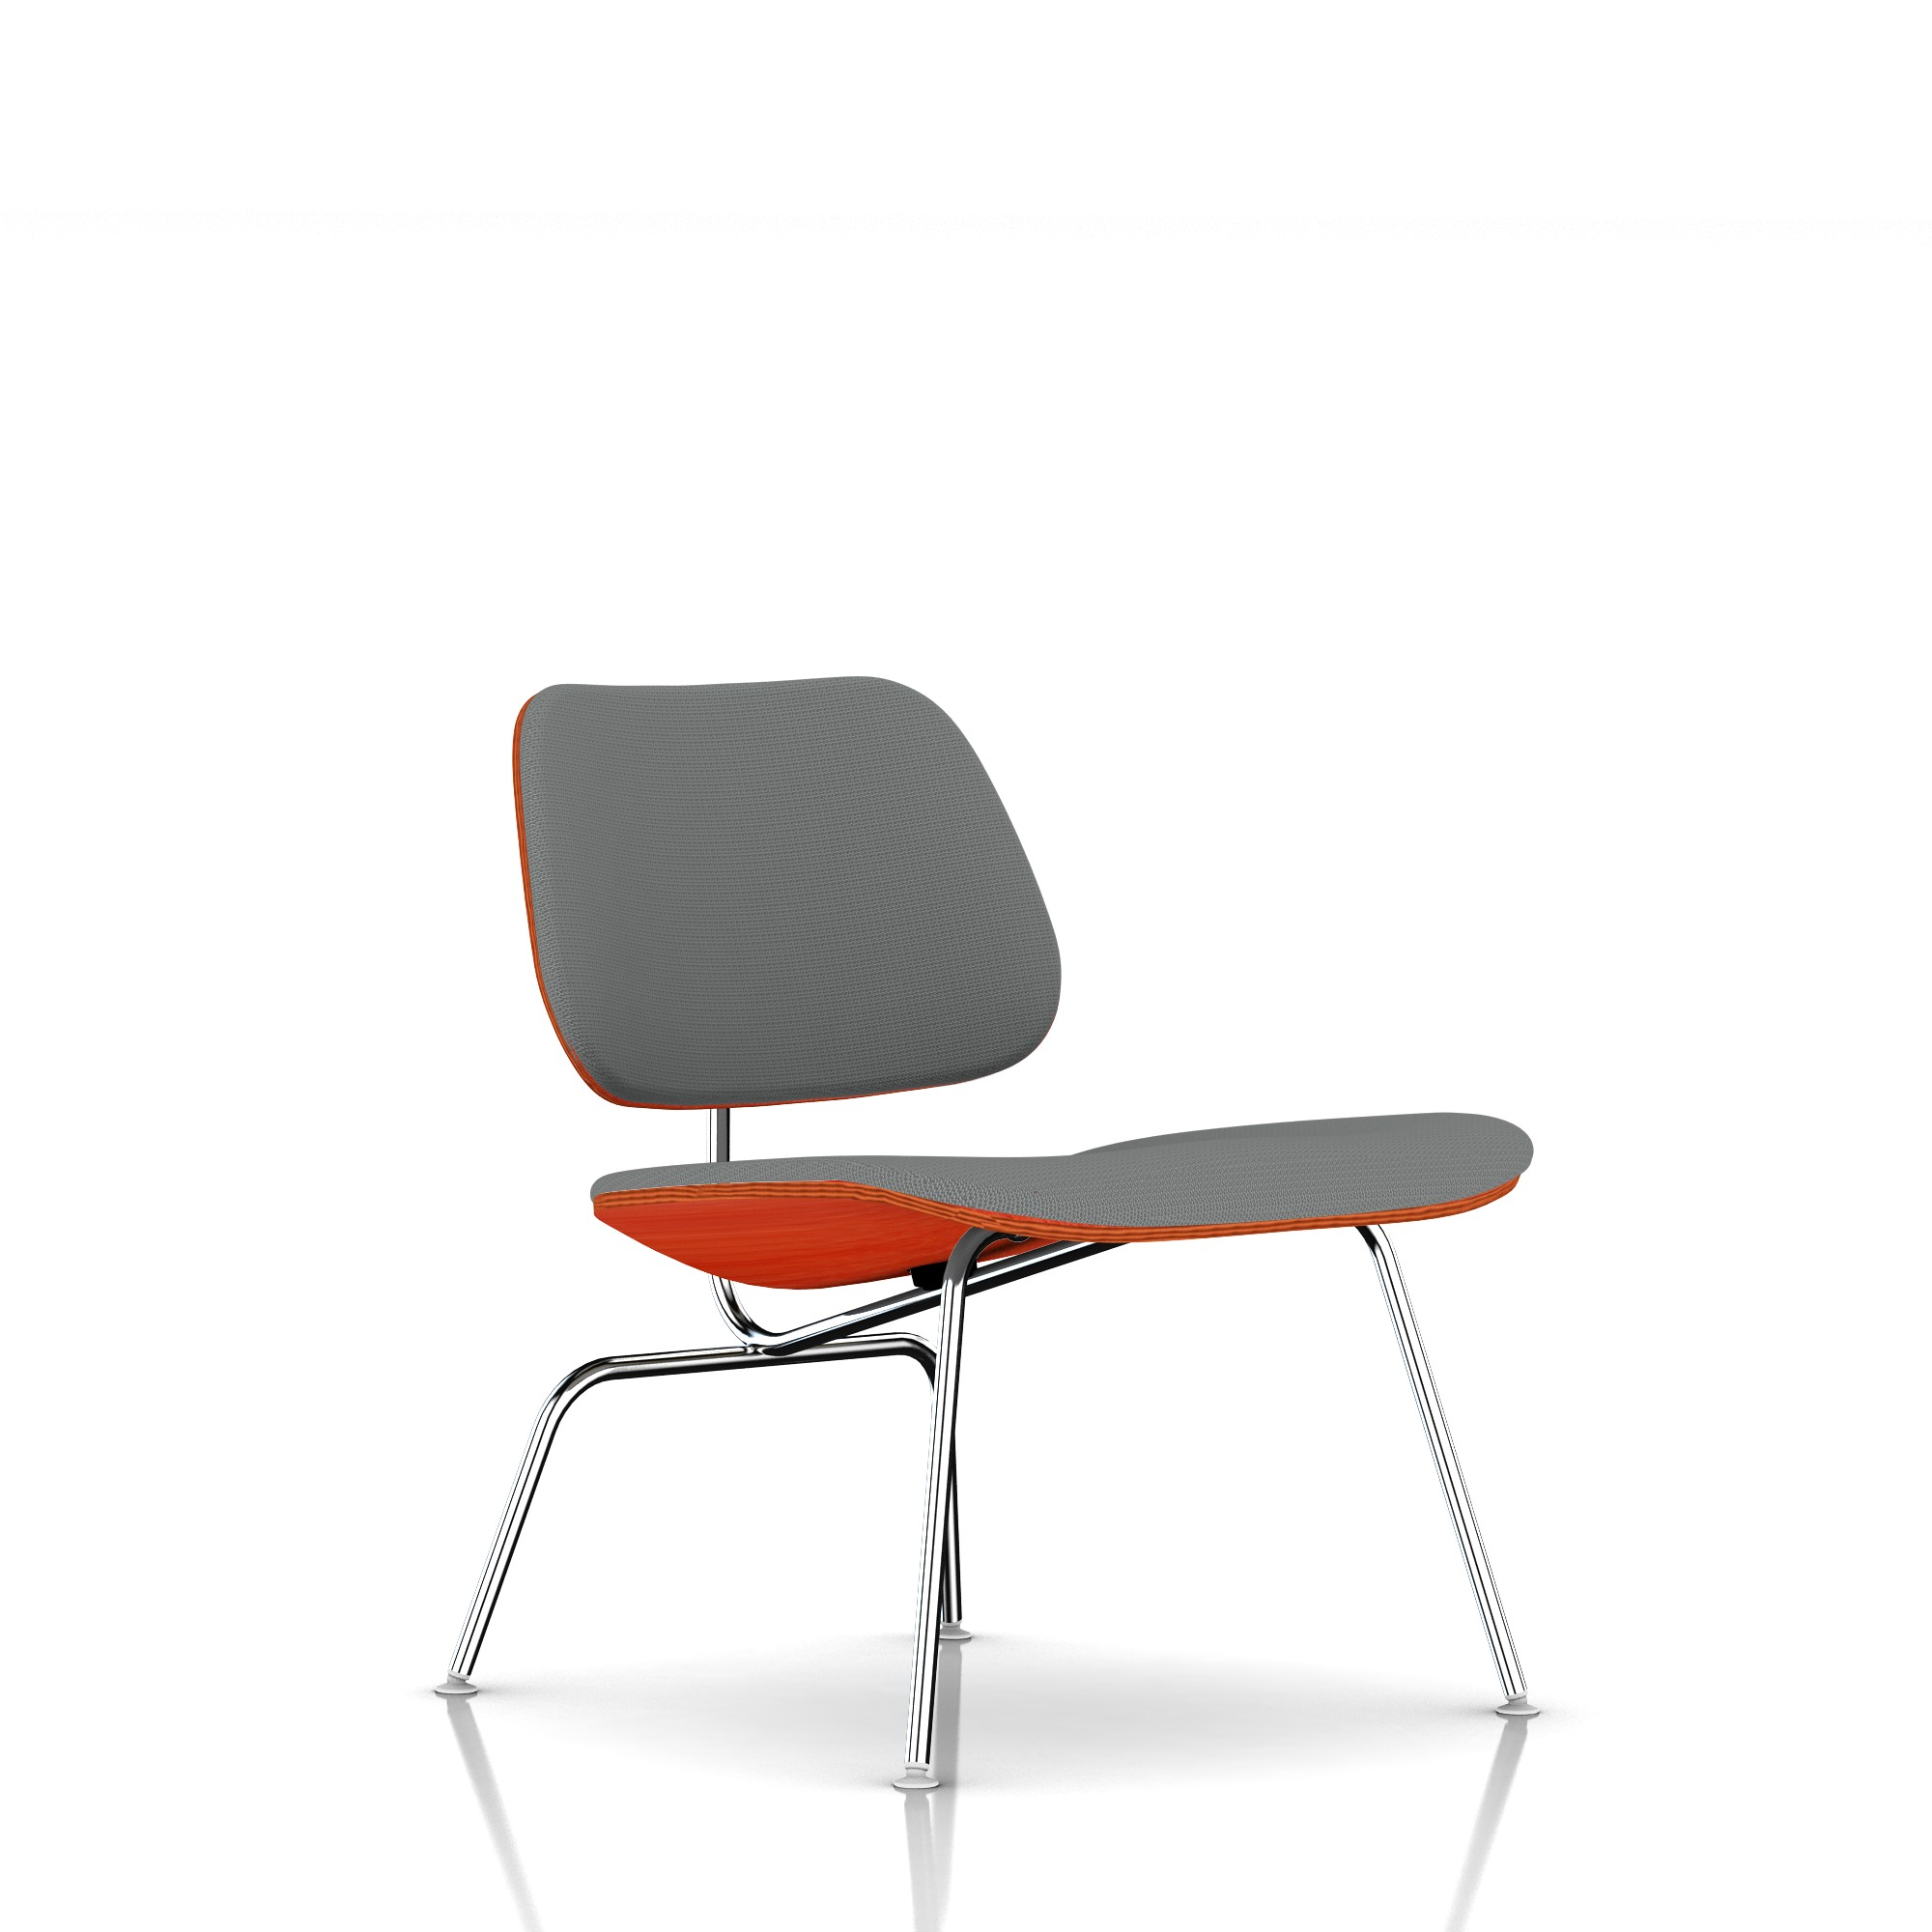 Eames Molded Plywood Lounge Chair in Slate Grey by Herman Miller